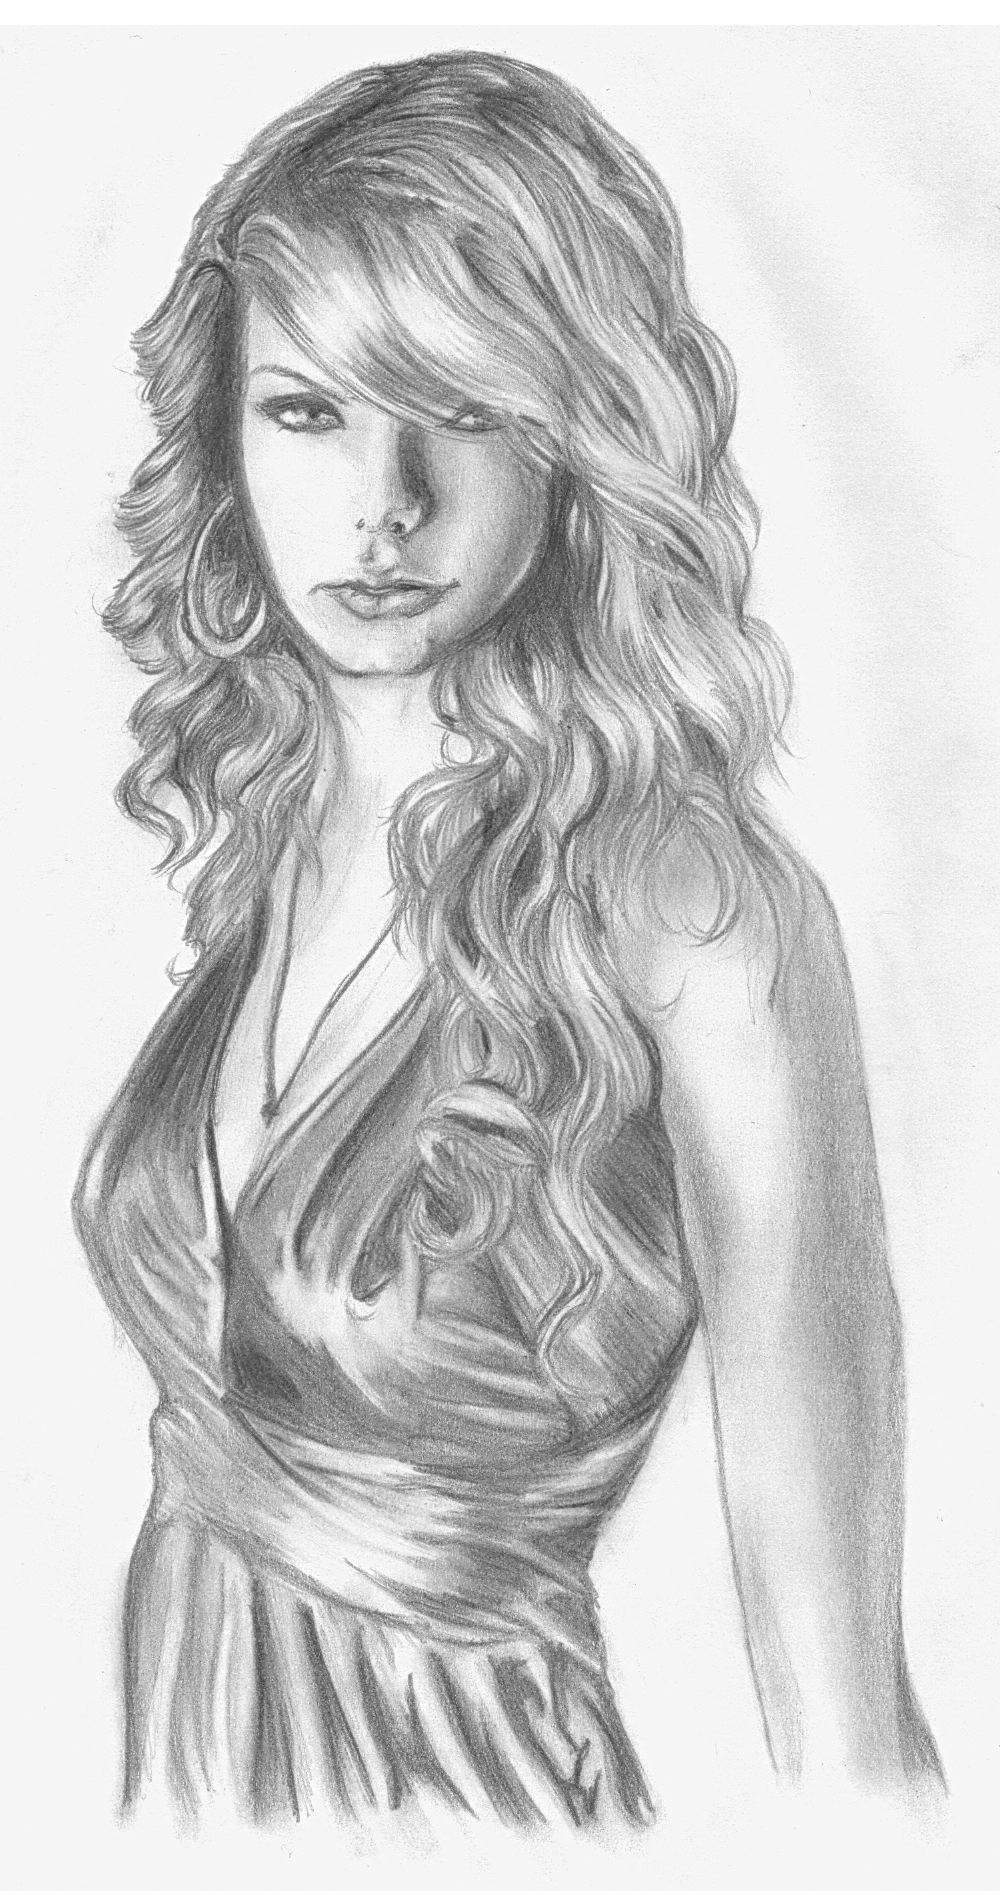 Taylor alison swift coloring page only coloring pages for Taylor swift coloring pages